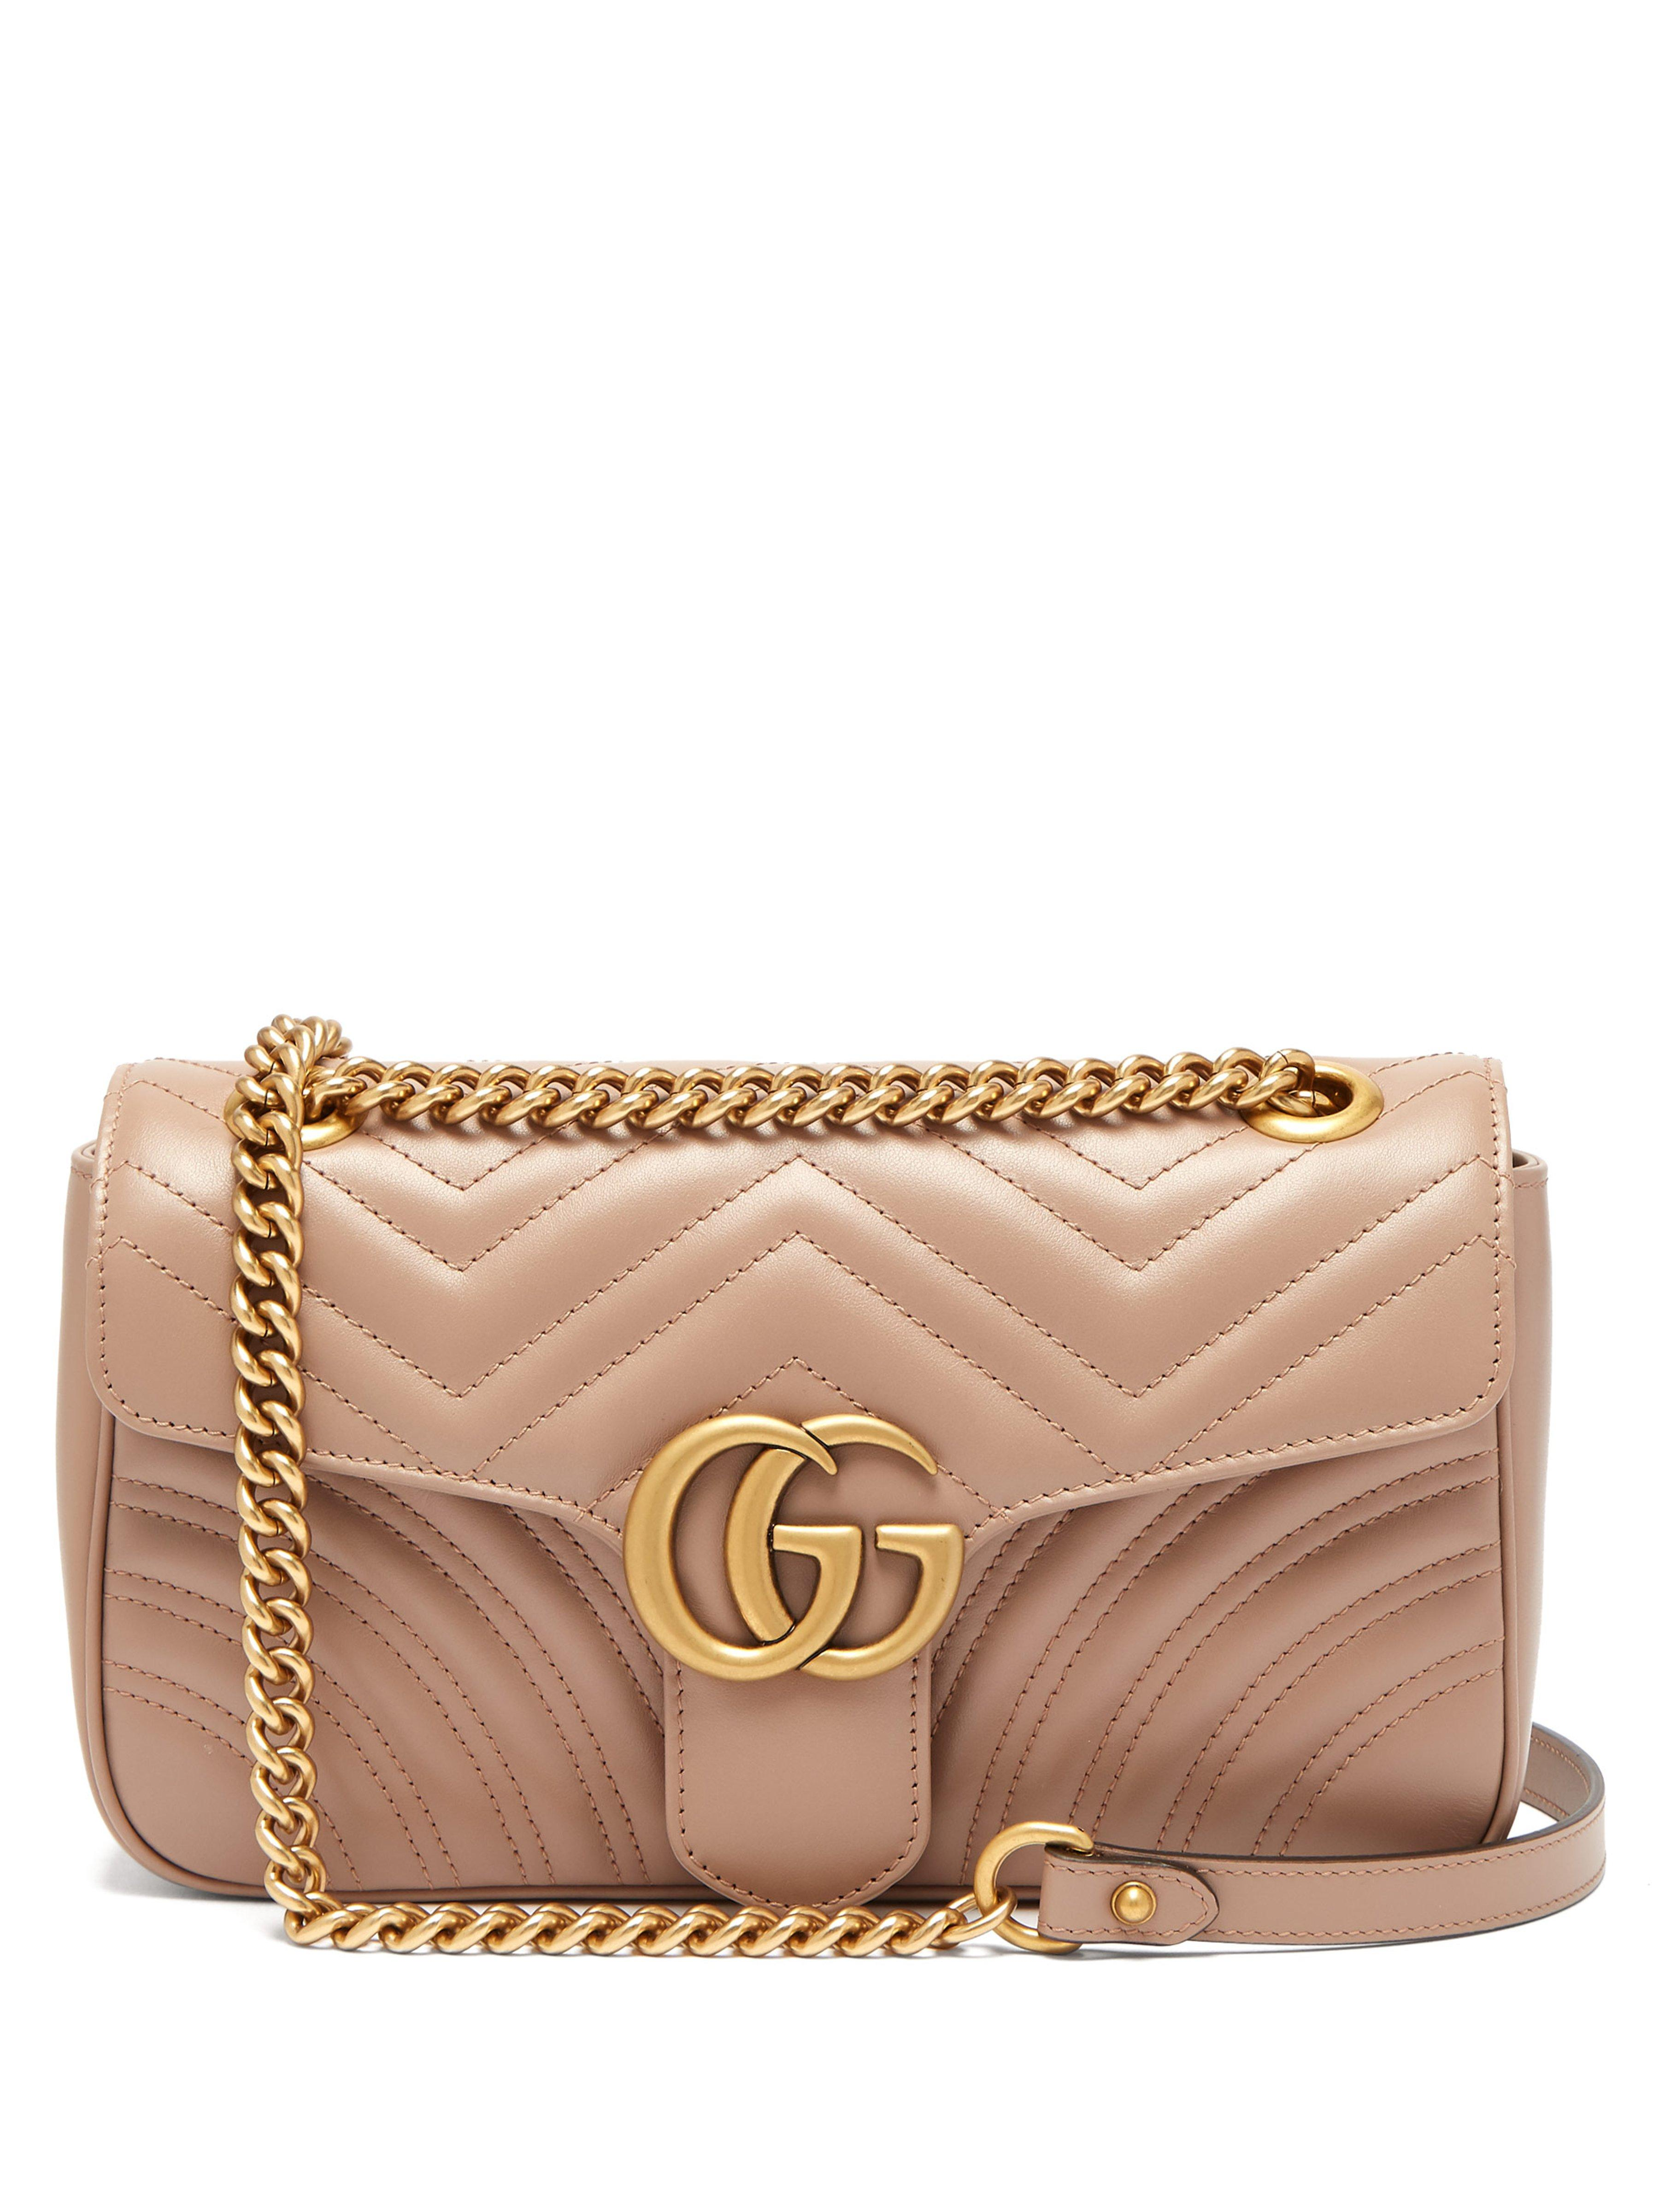 52fe15d07711ad Gucci Gg Marmont Small Quilted Leather Shoulder Bag - Save 9% - Lyst